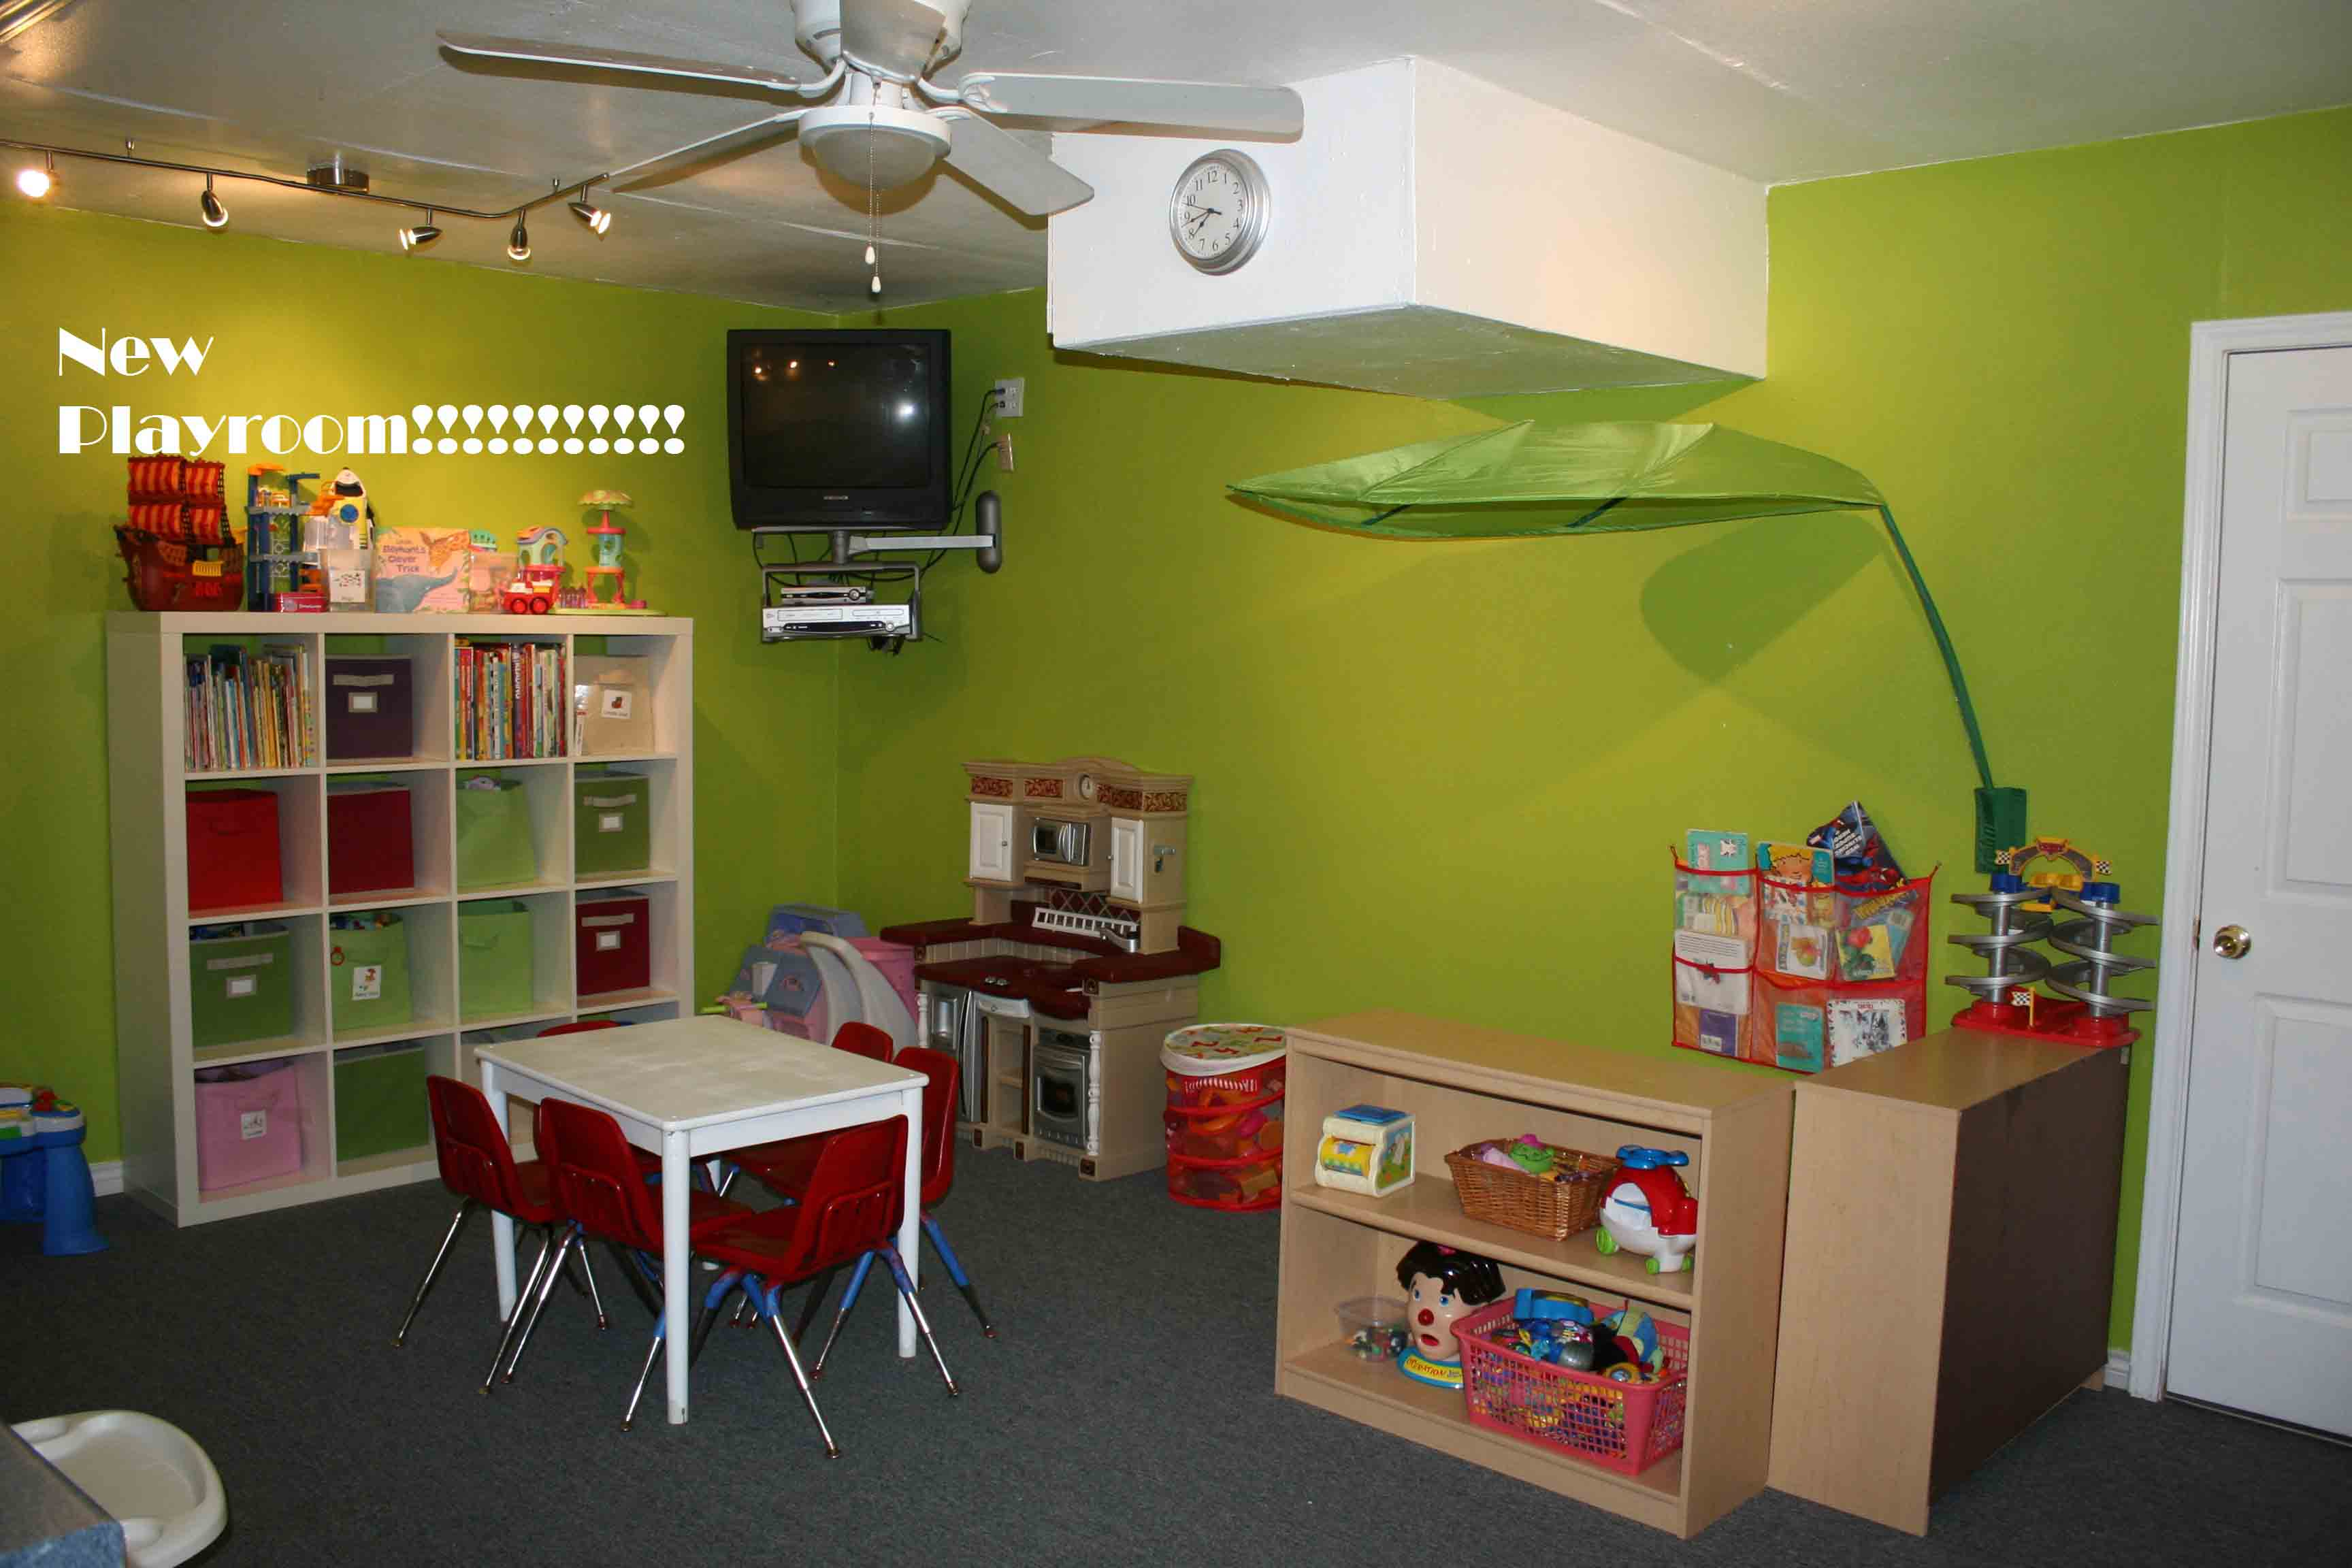 Daycare decor jpg - Home Daycare Decorating Ideas Amy Seagraves Arlington Tx Registered Child Care Home